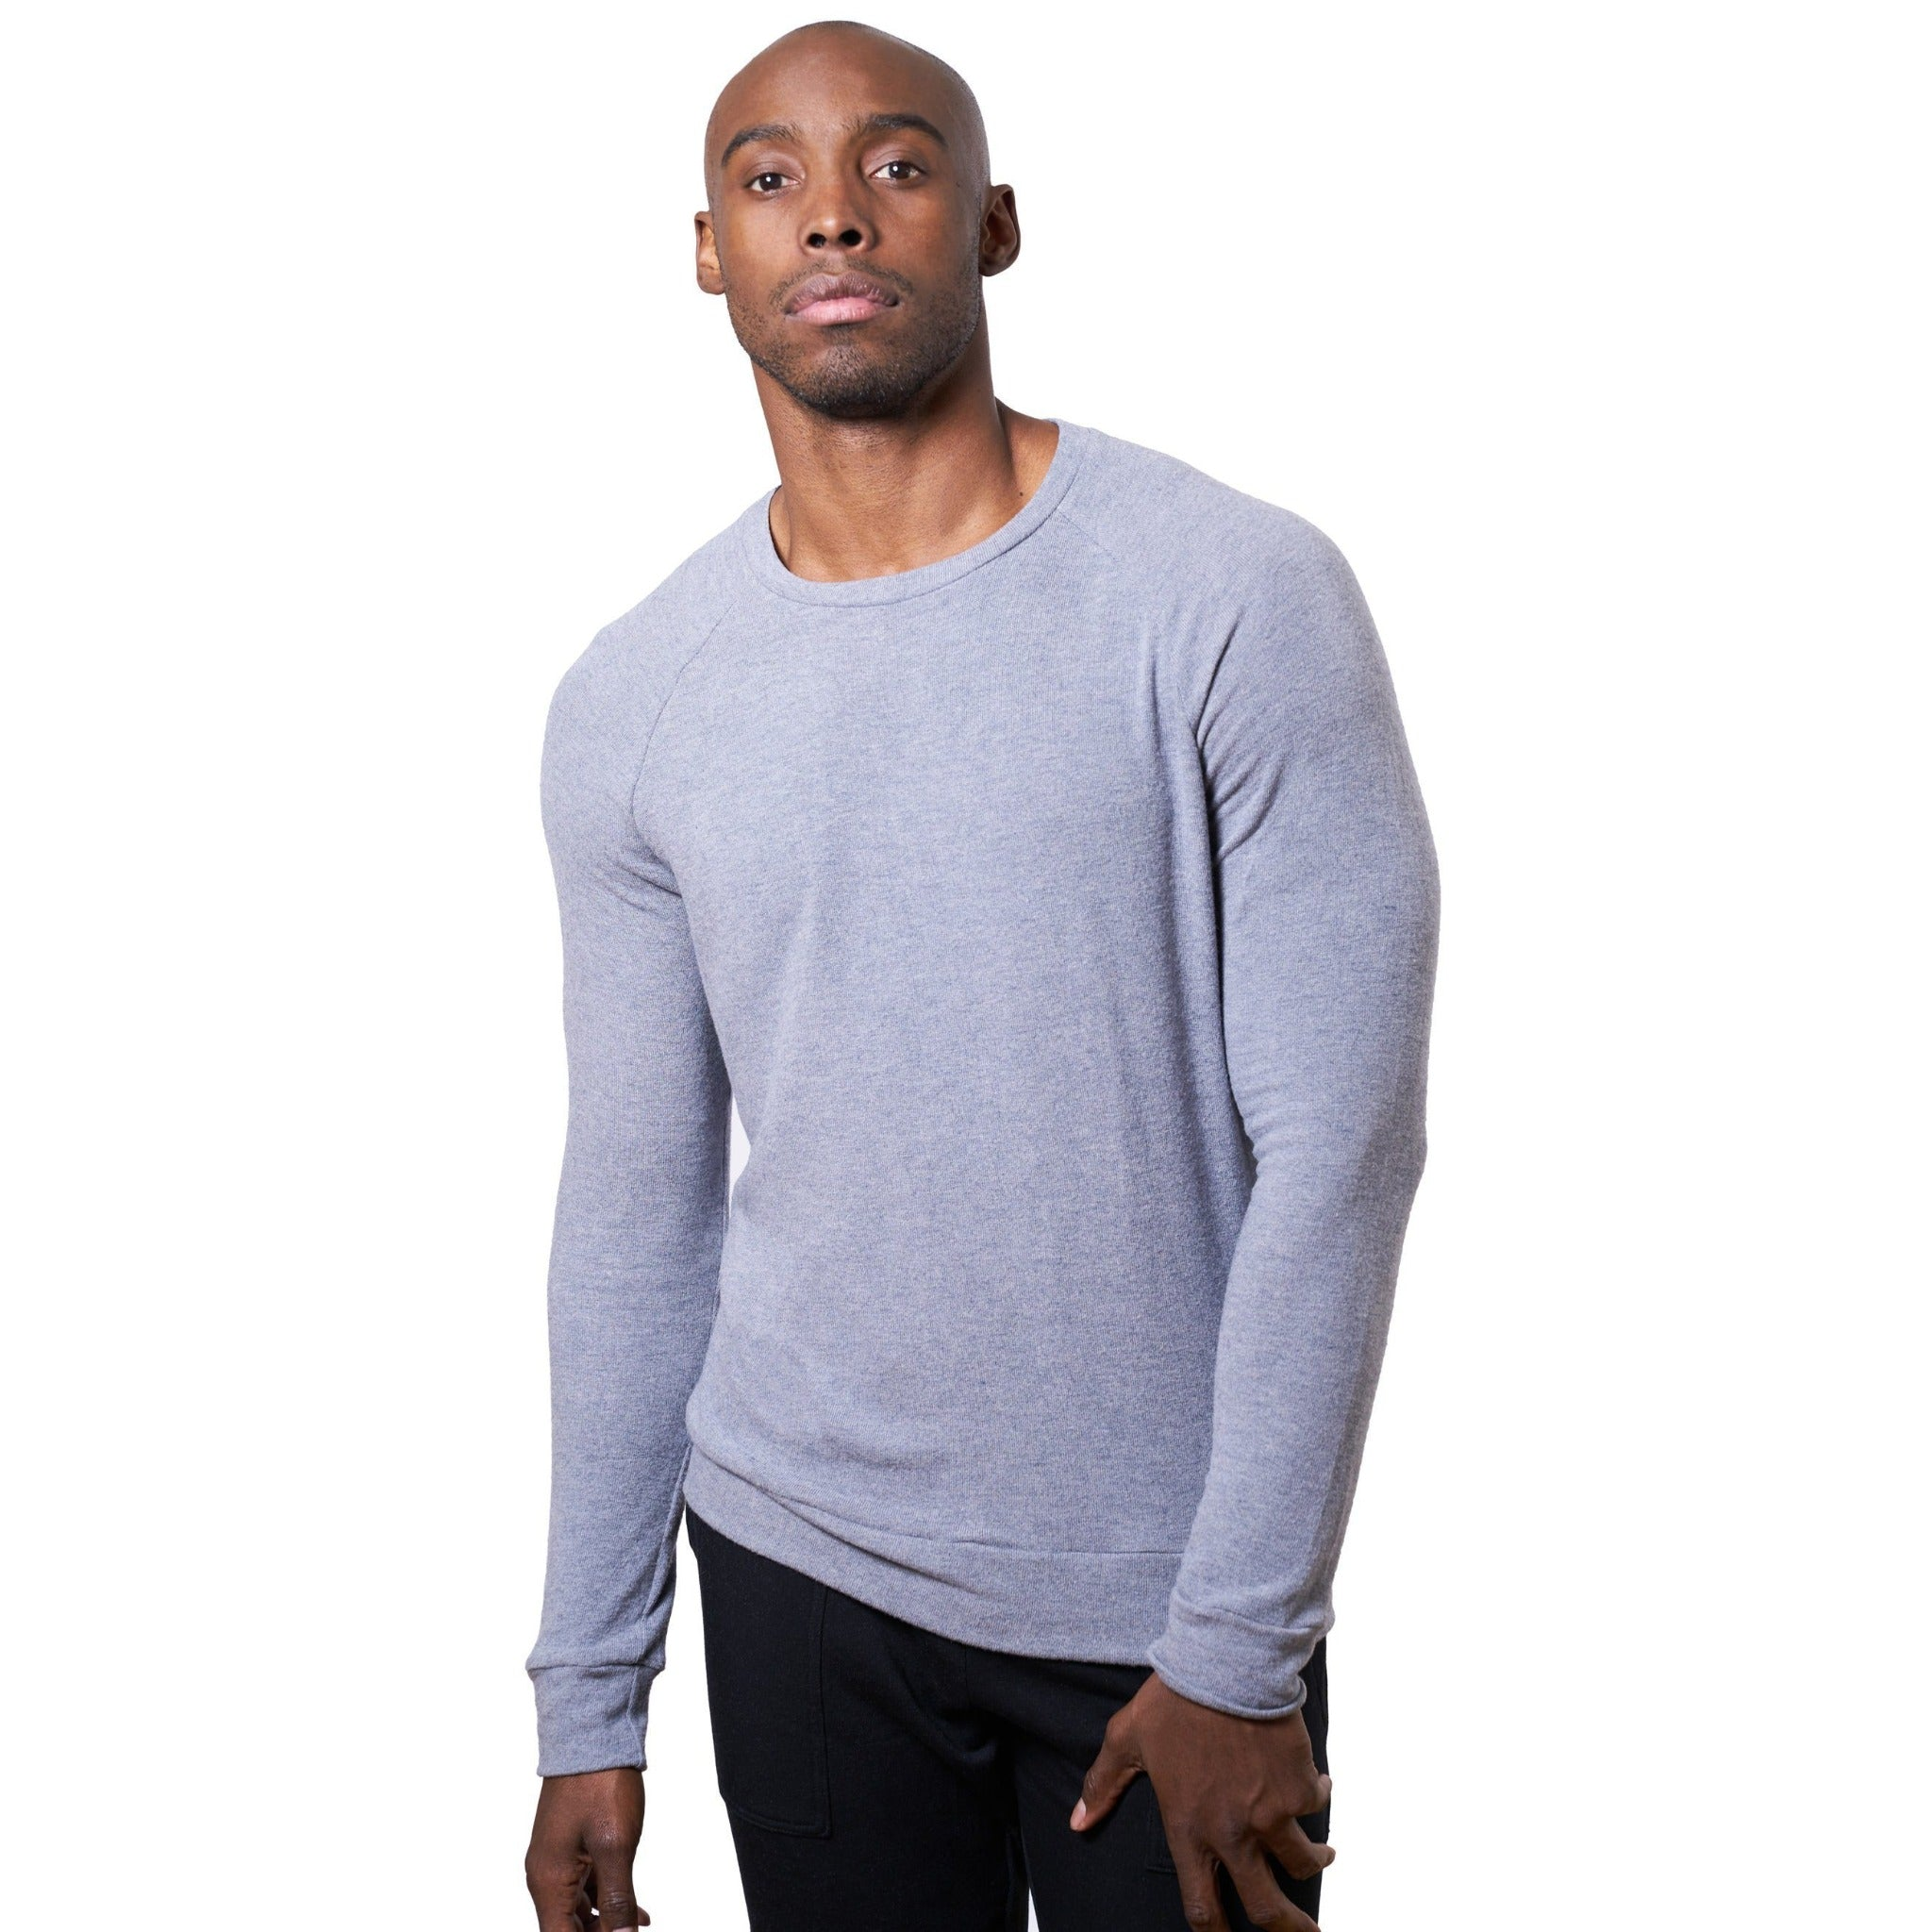 Mitchell Evan comfortable luxury loungewear